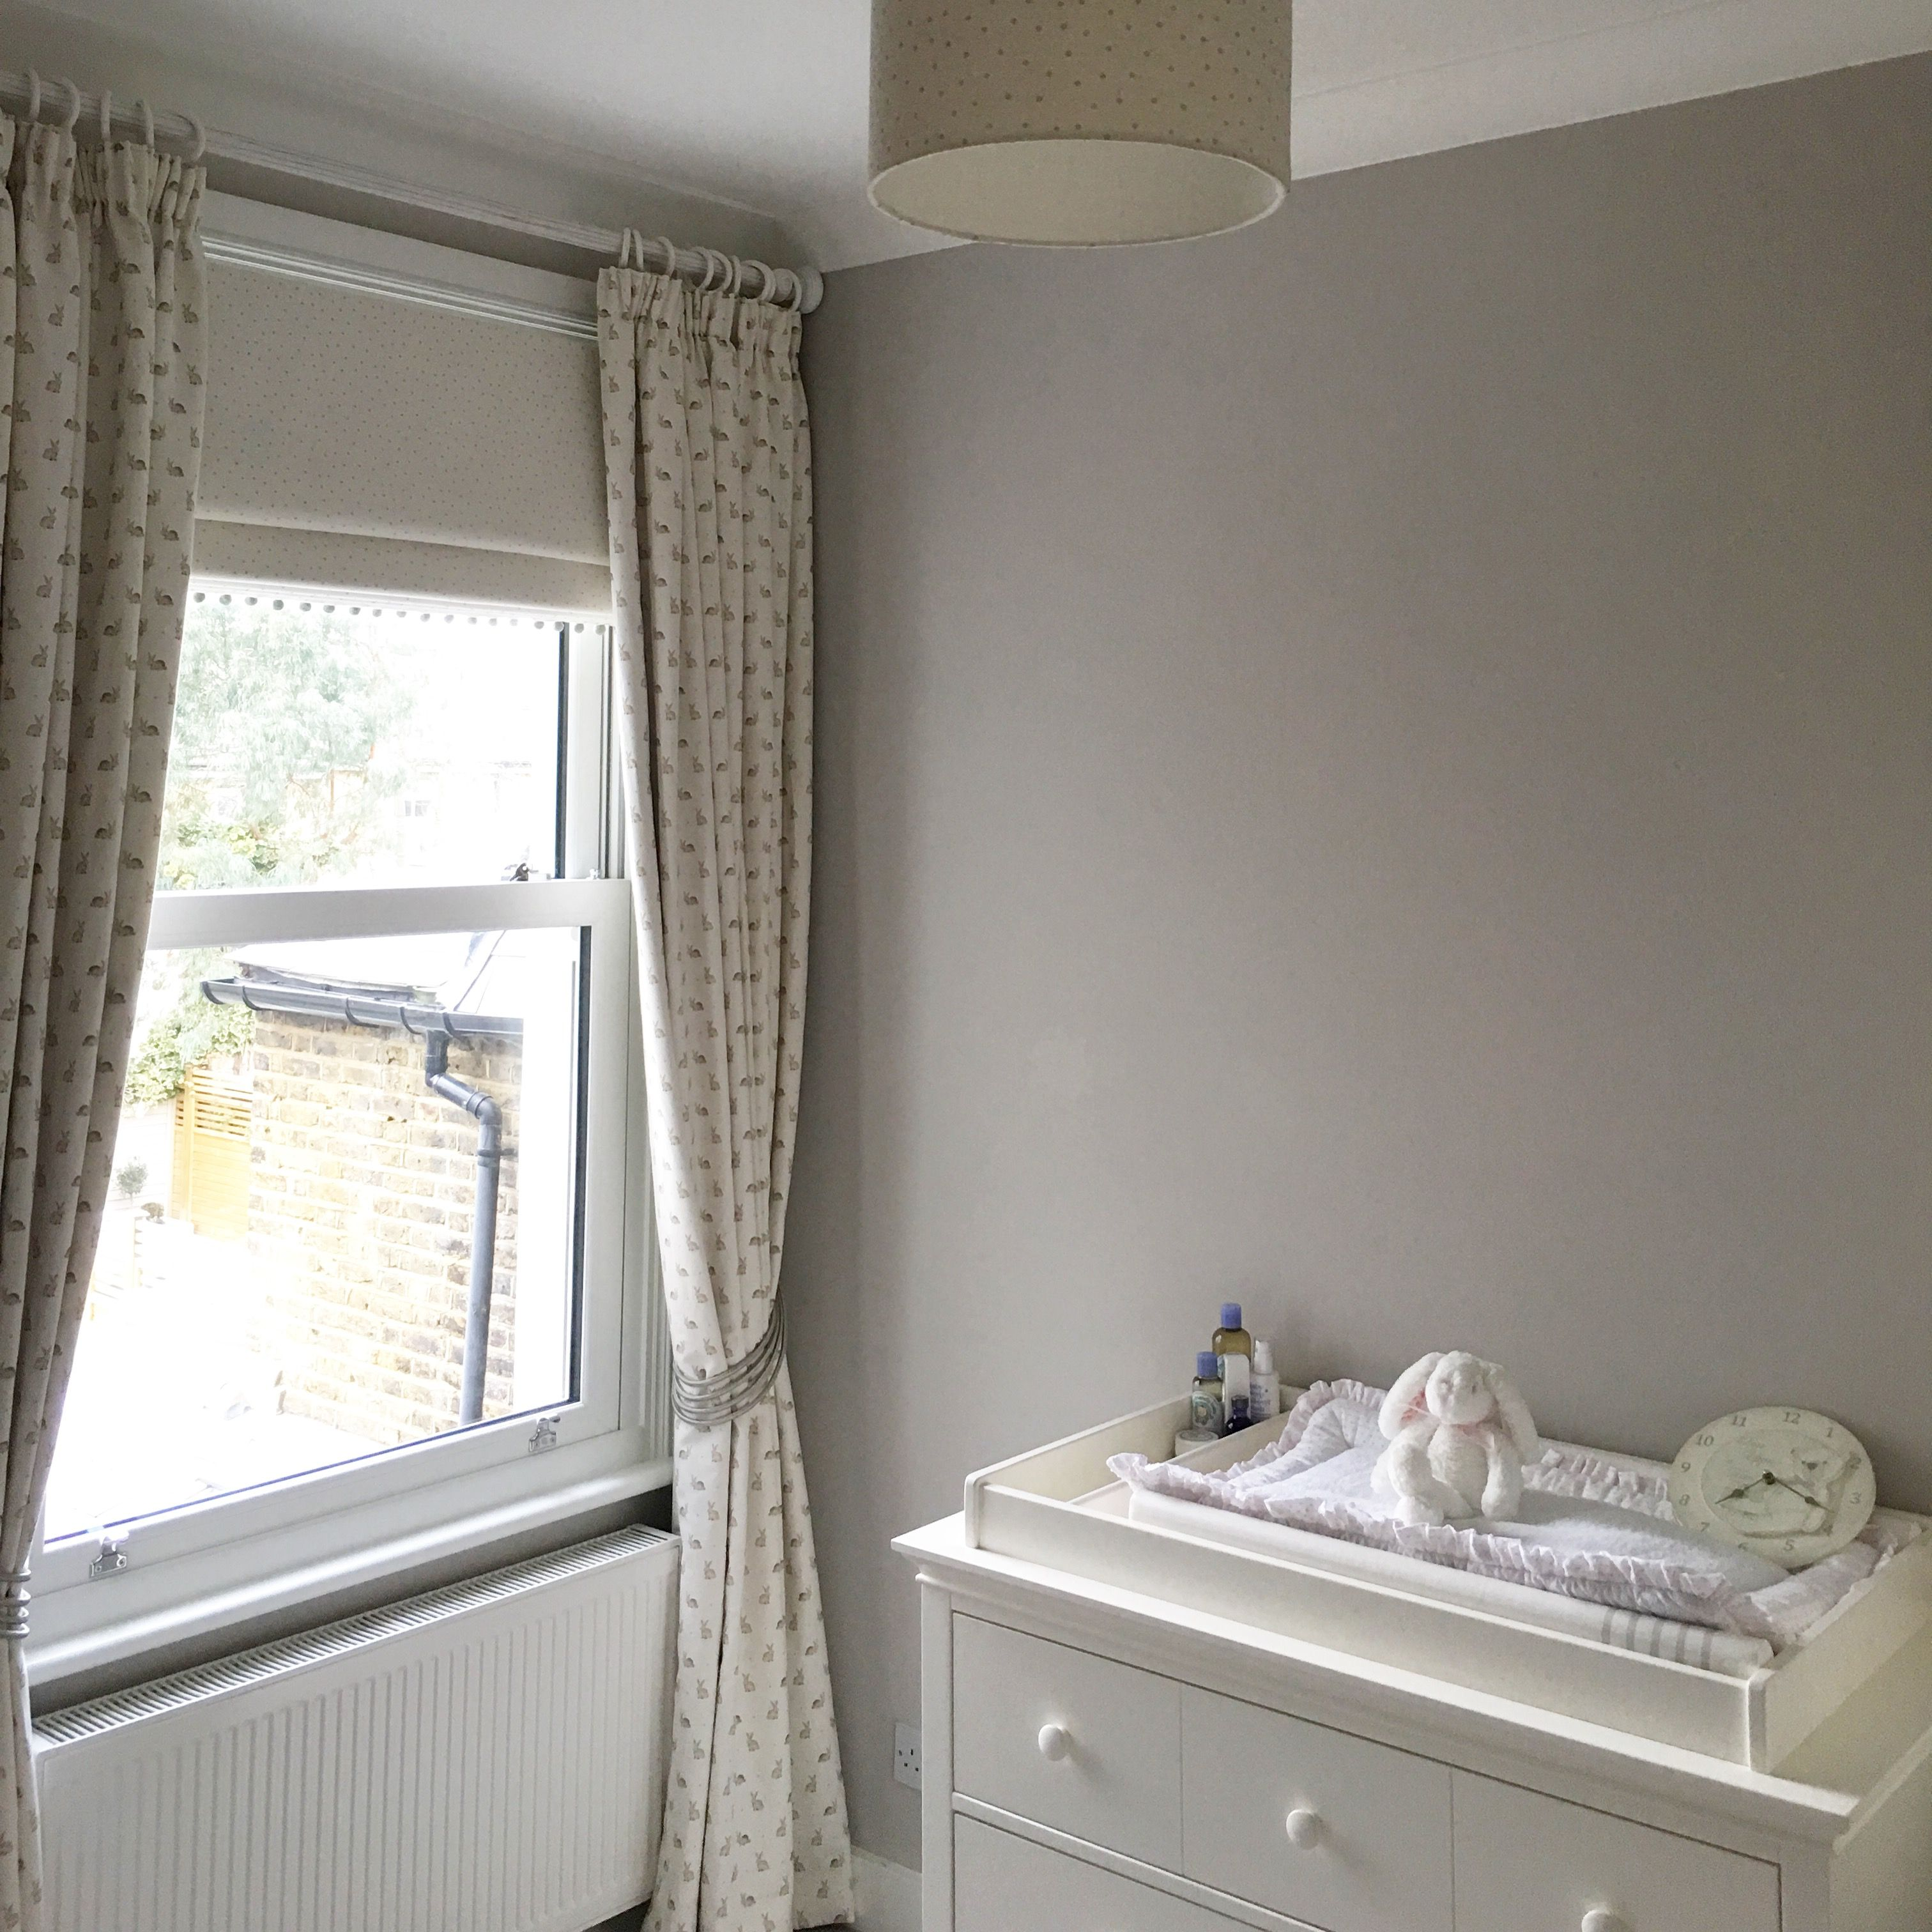 Bespoke Dove Grey Dotty Blinds With Pompom Trim With Matching